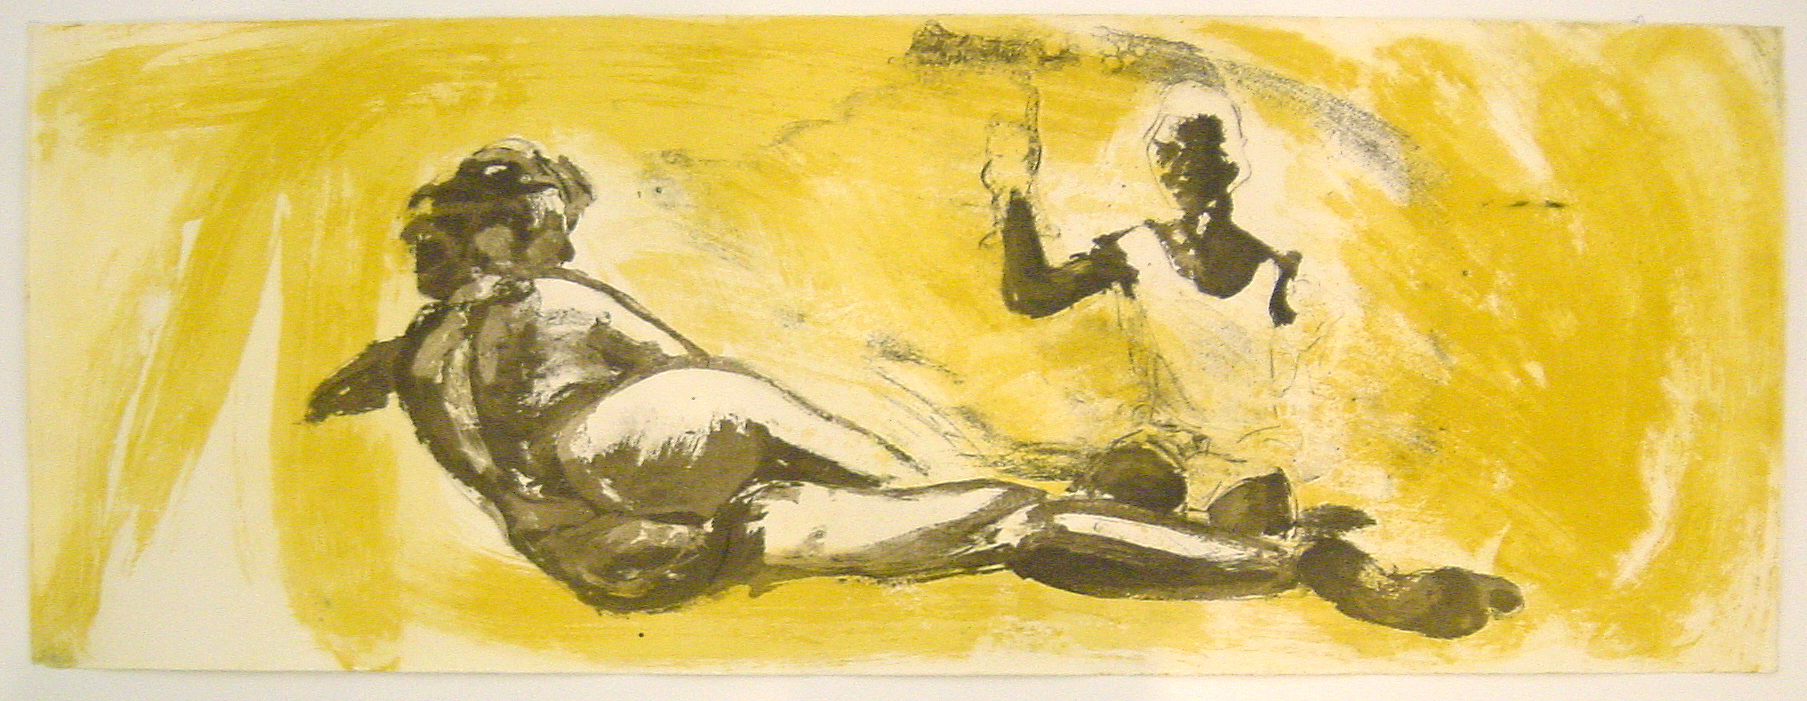 Floating Islands Proof for Puppet Tears (large version), 1985. etching on Paper, 5 APs (study proof) 12 x 32 inches